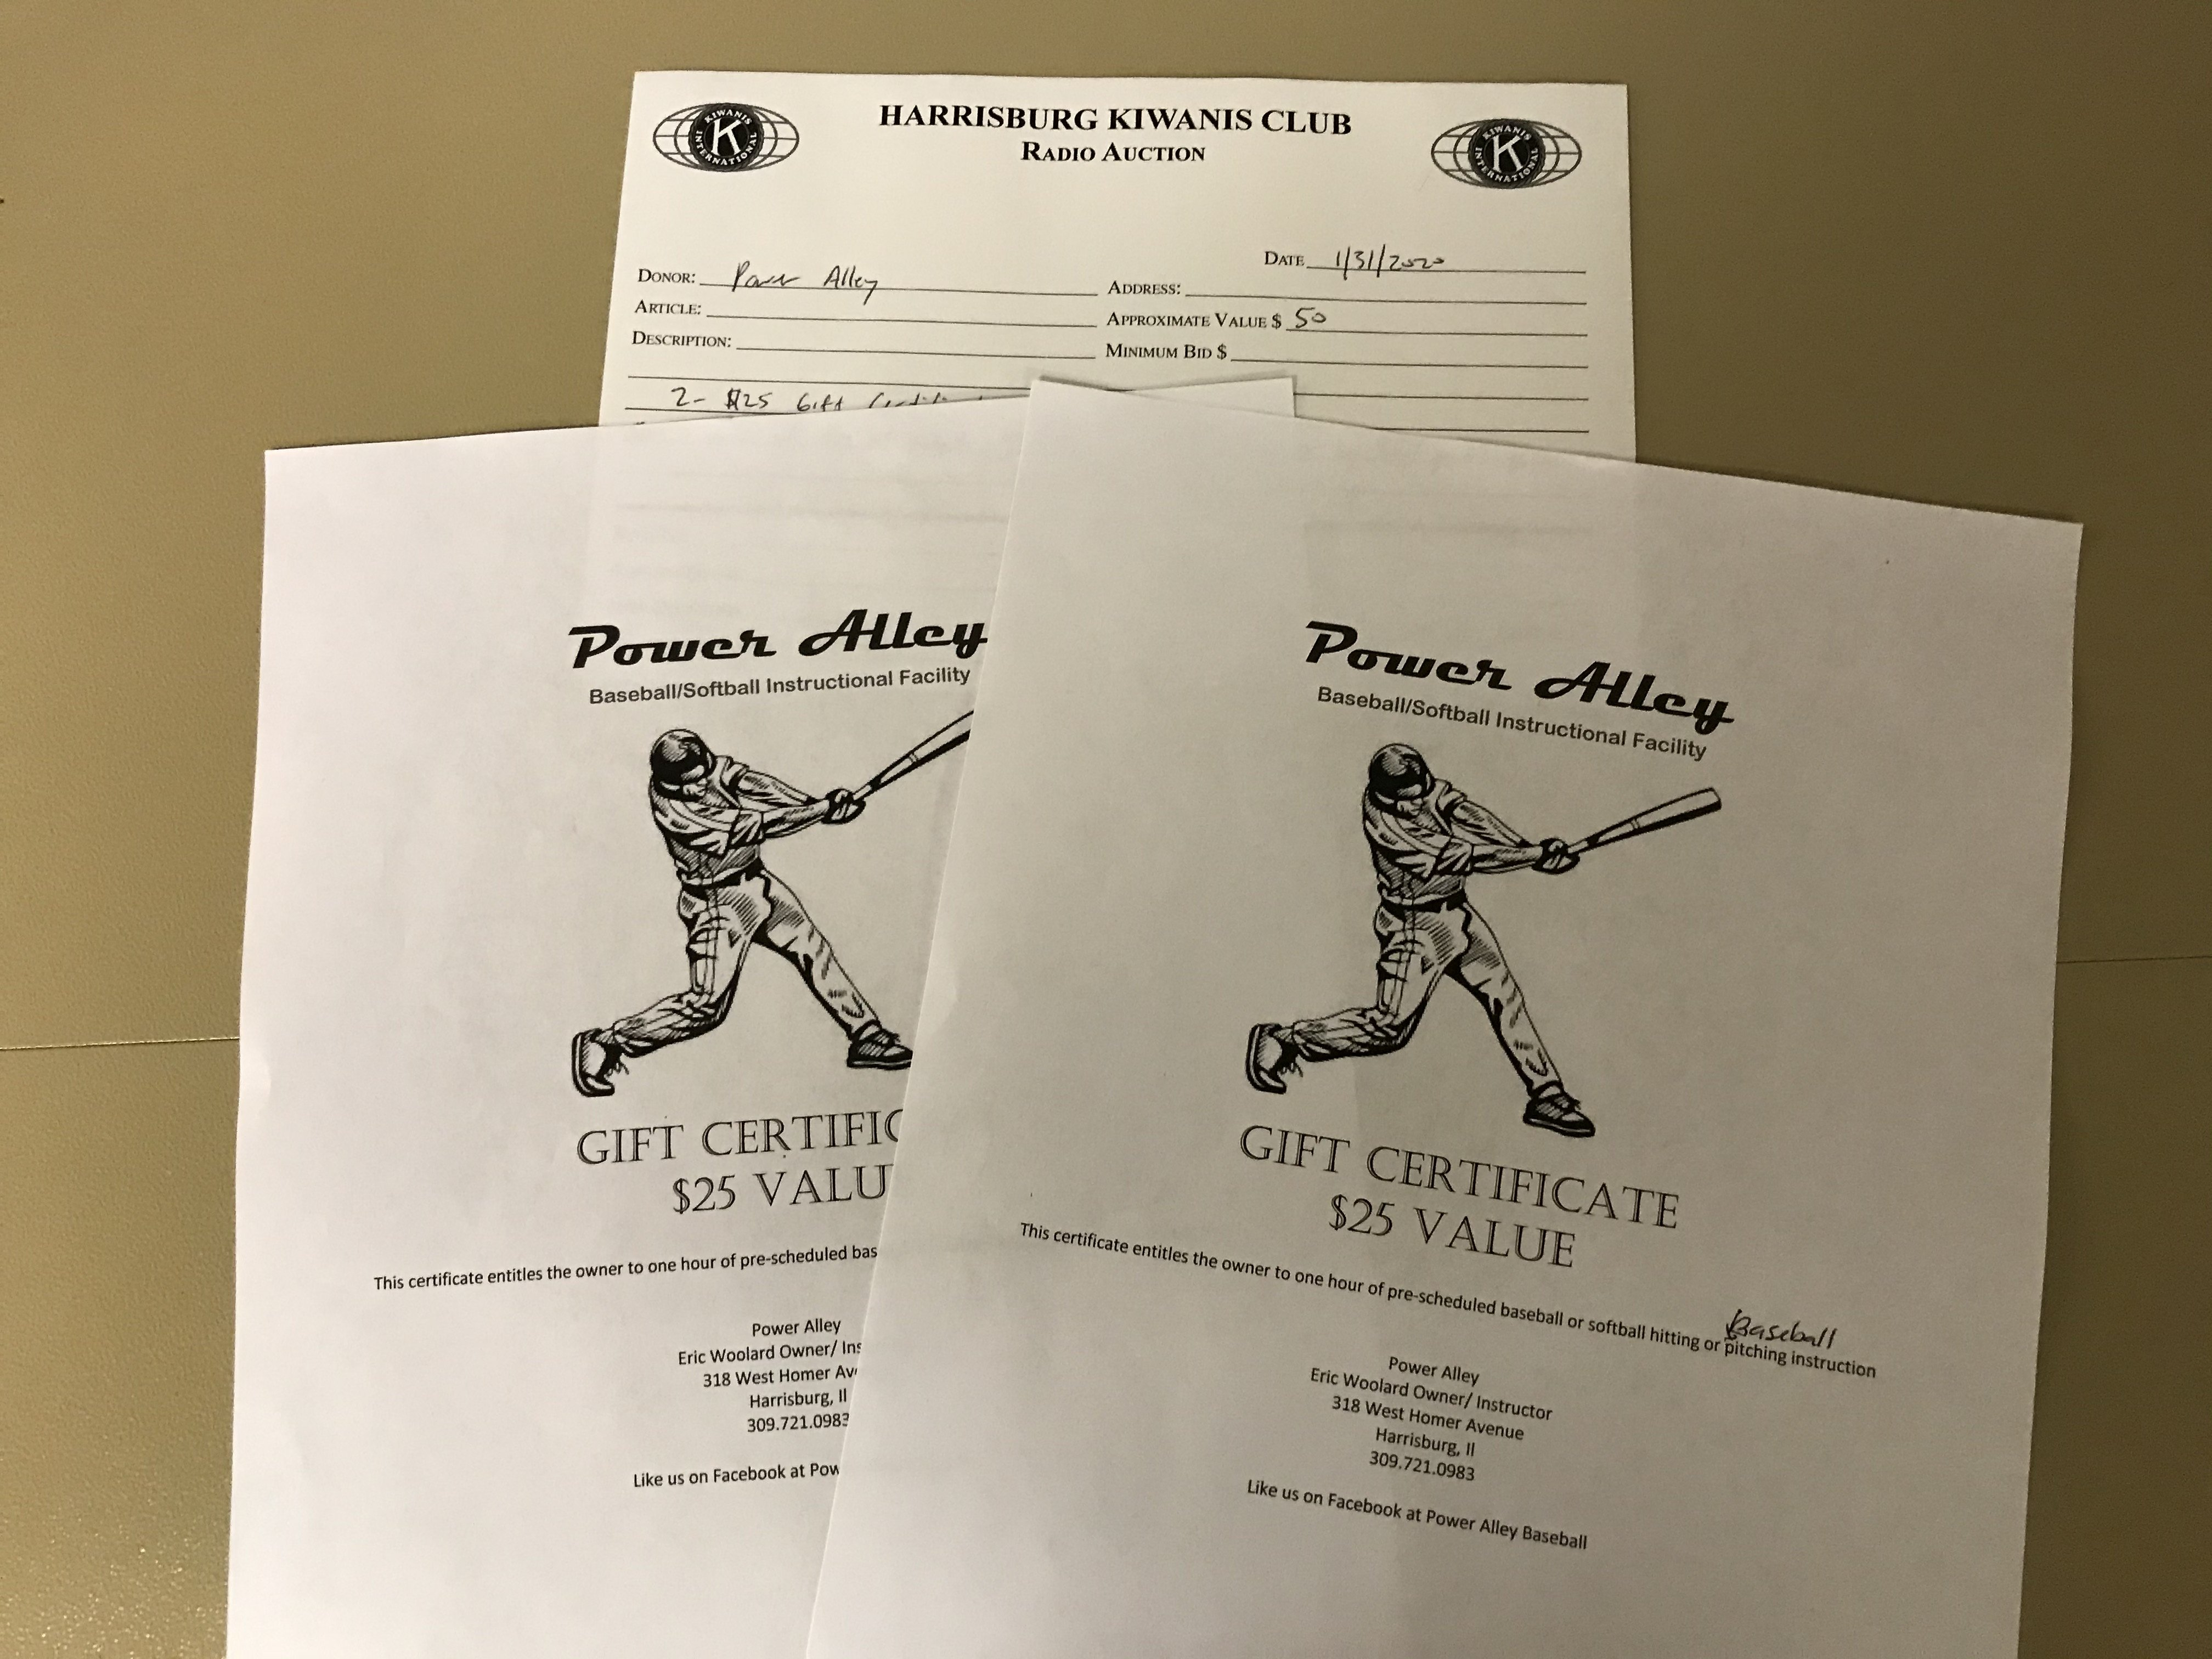 Item 438 - Power Alley 2 - $25 Gift Certificates for 1 hour of instruction each